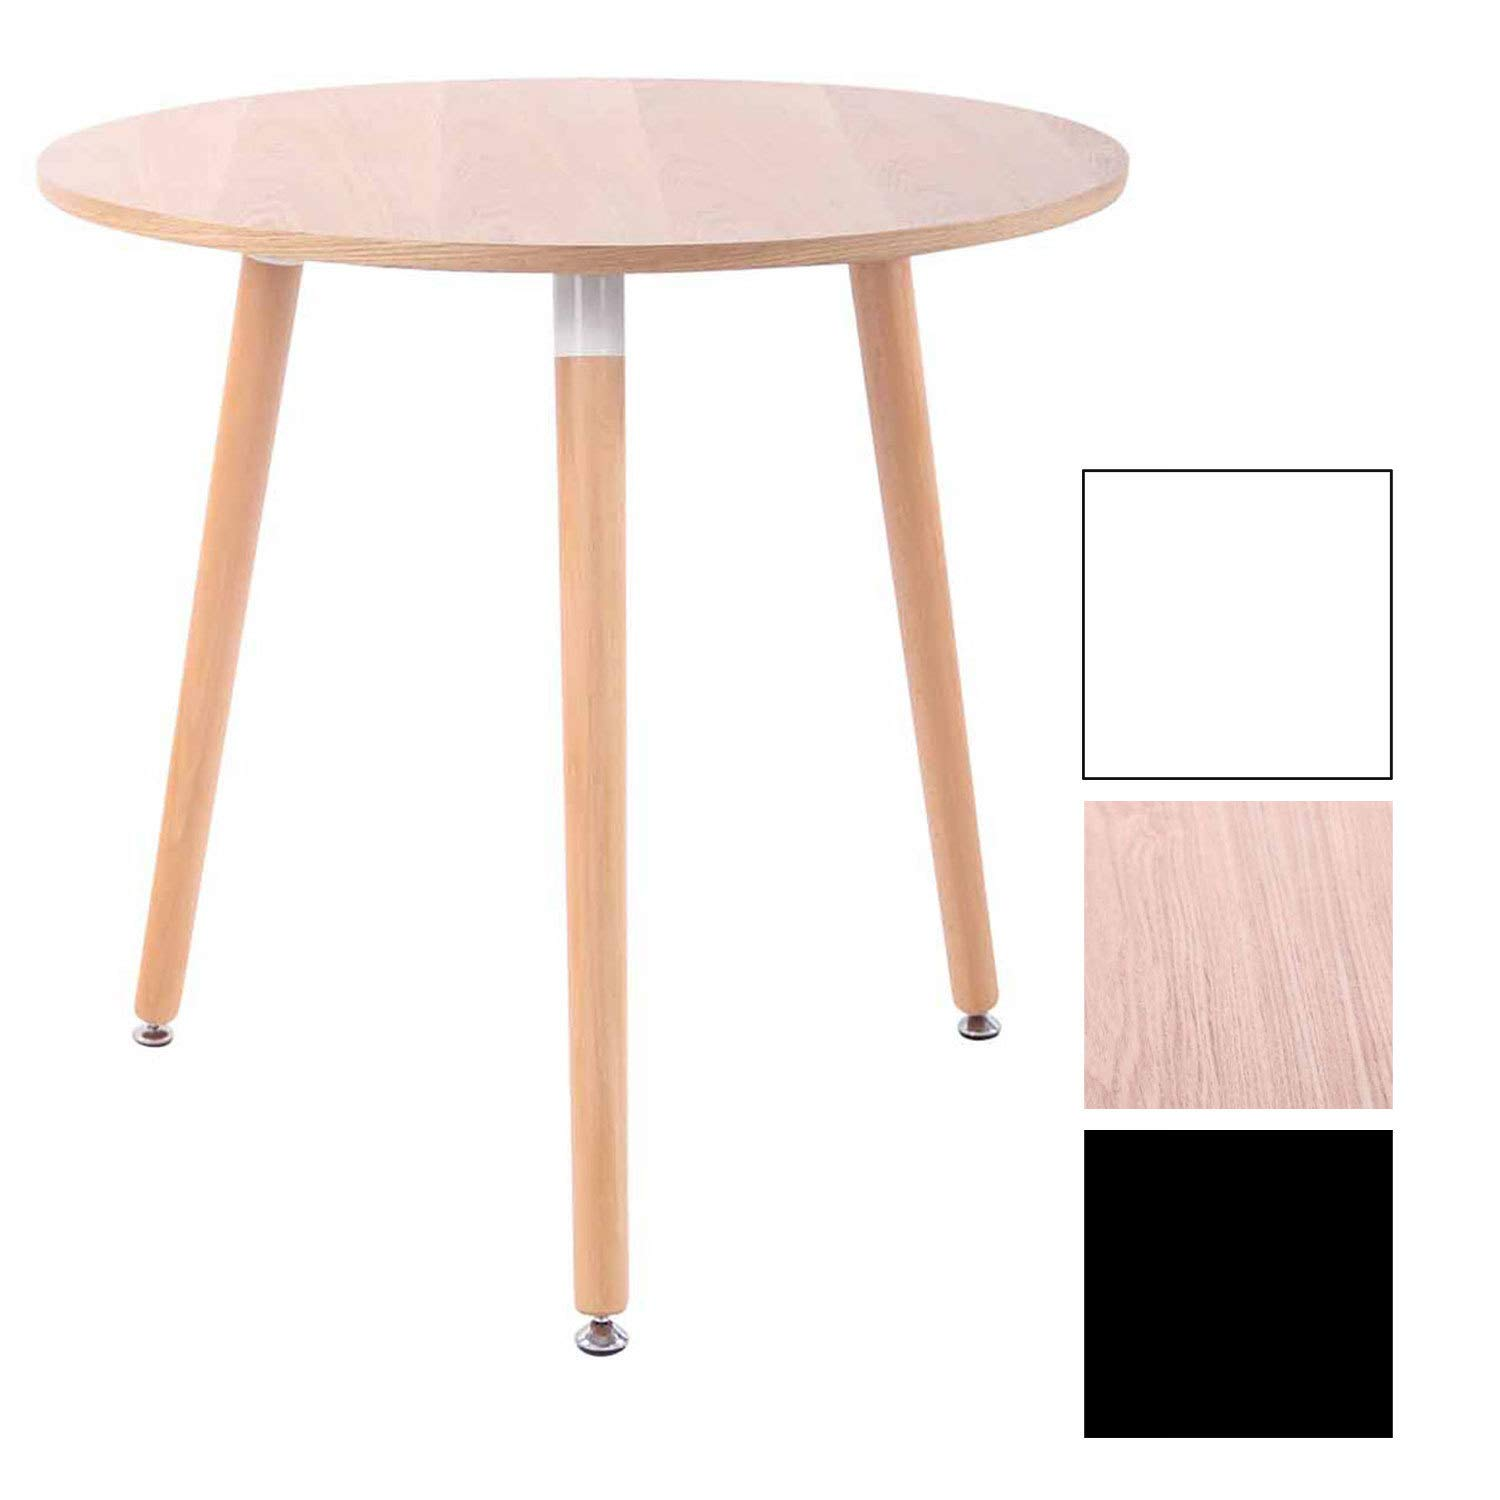 natura 80 x 80 cm 3 wooden legs CLP dining table ANSGAR round tabletop natura